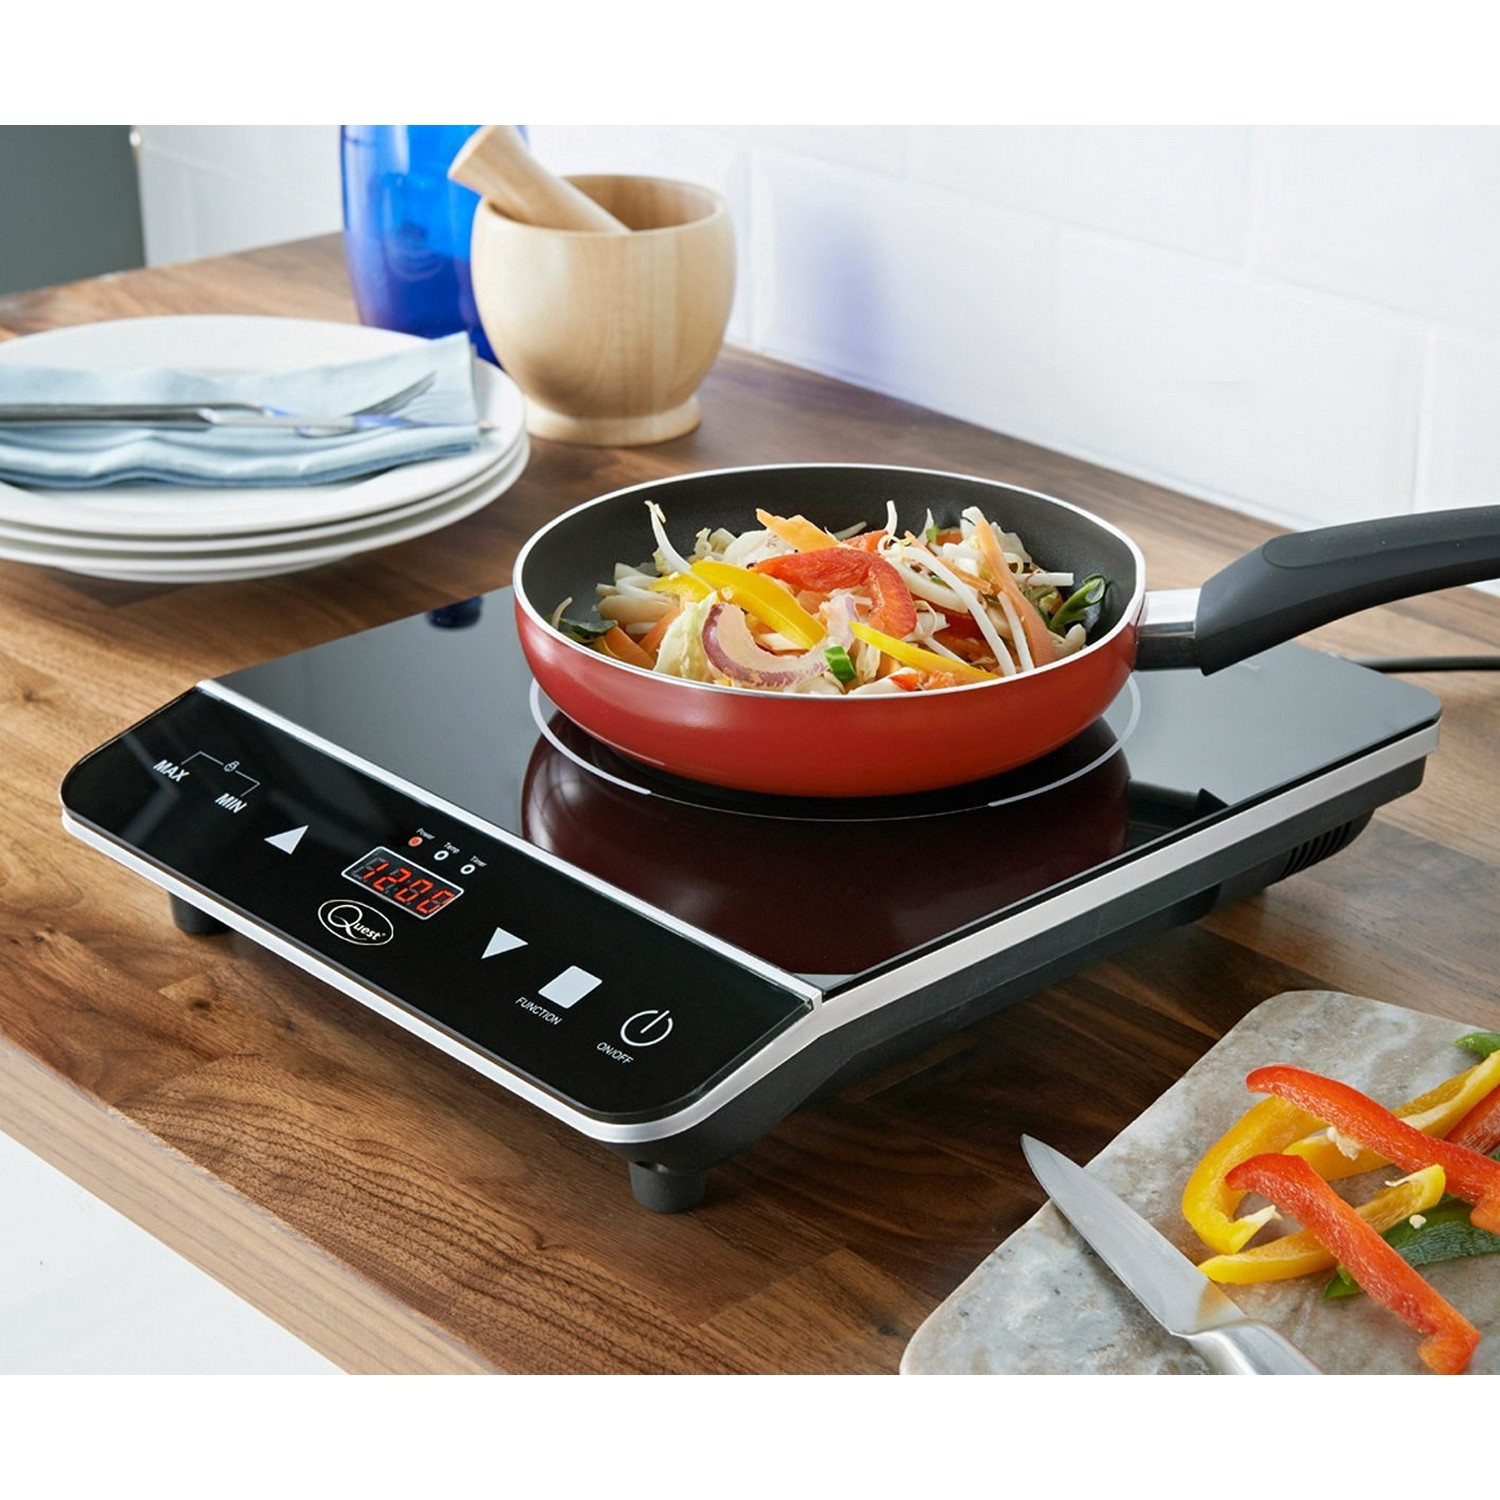 Single digital induction electric hob hot plate kitchen for Table induction 71 x 52